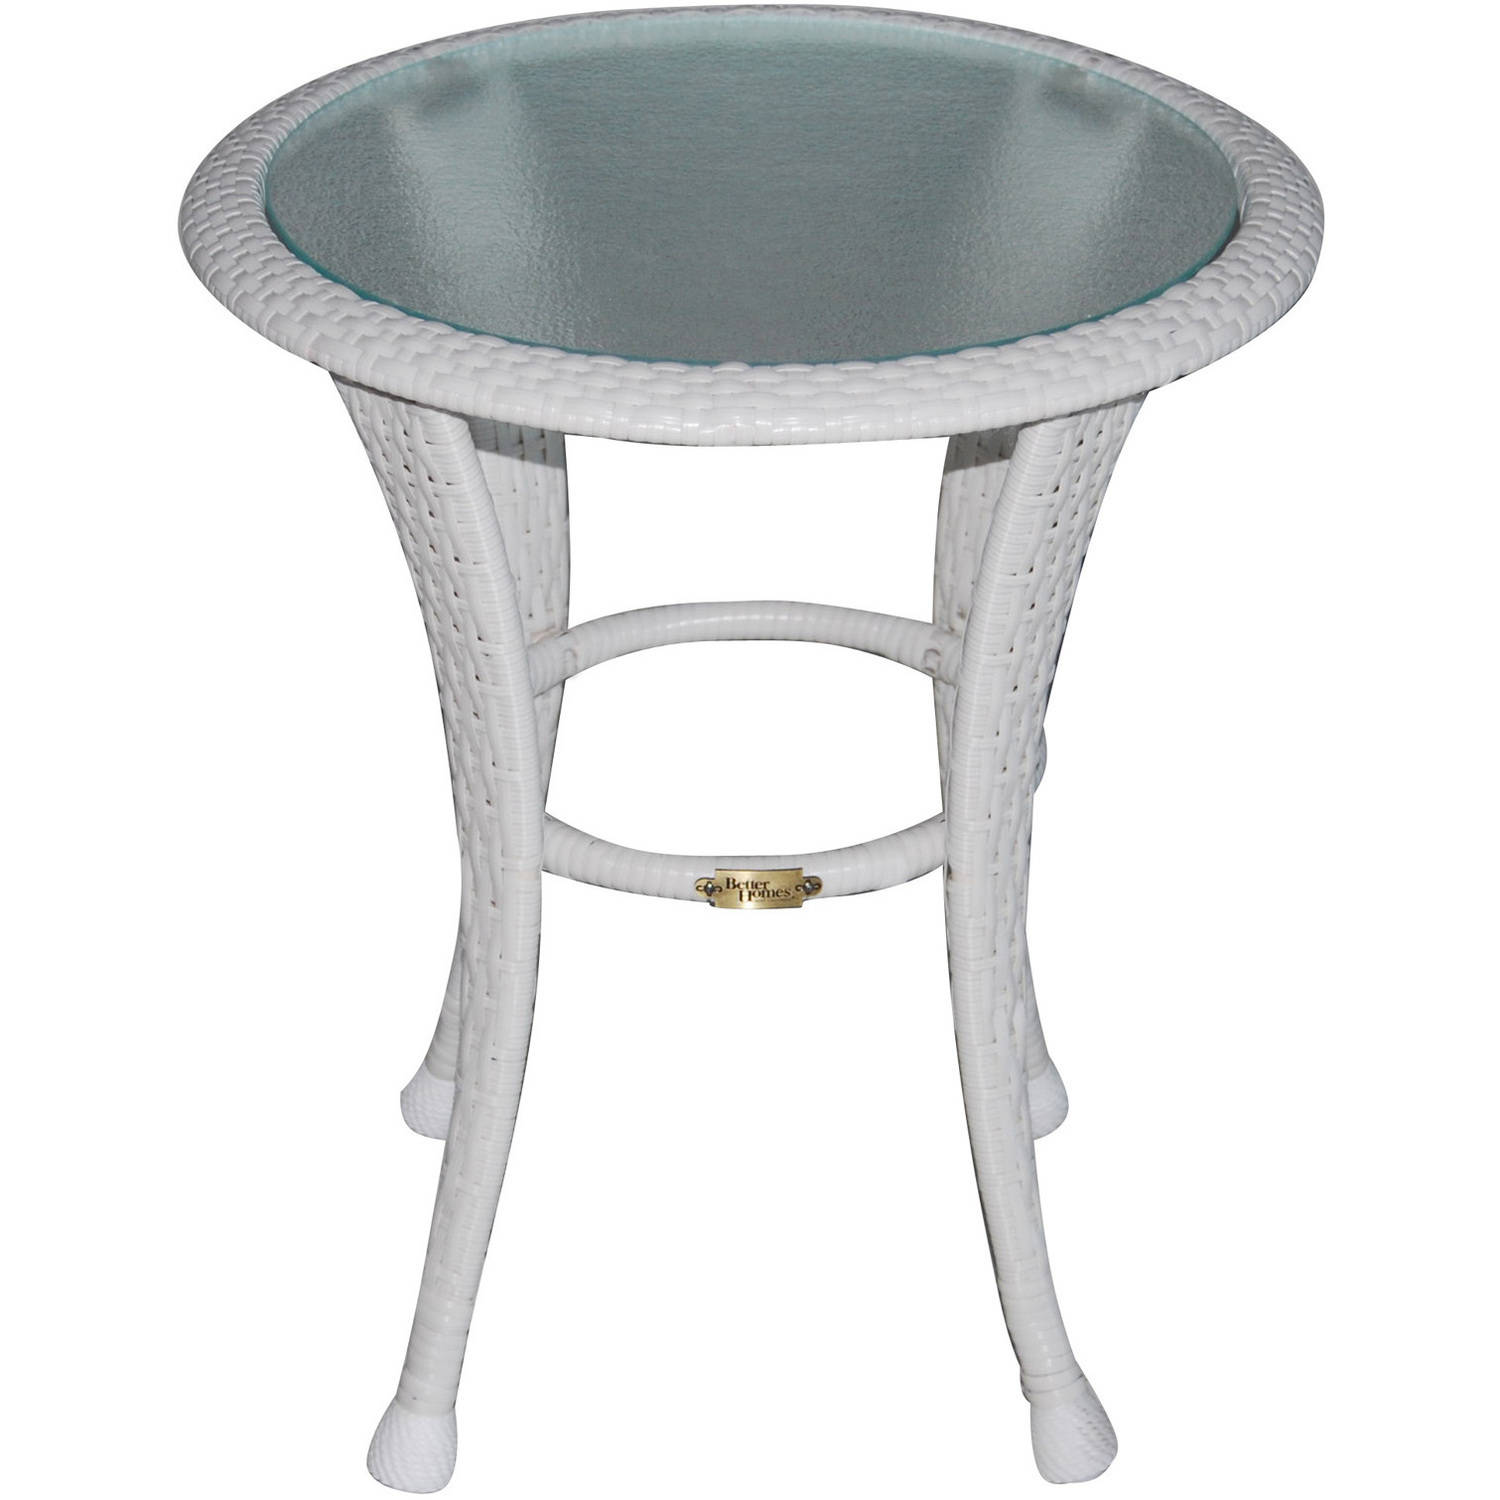 better homes and gardens azalea ridge round outdoor side table furniture mercury glass lamp white wood nightstand small barn door hardware acrylic with shelf west elm frames